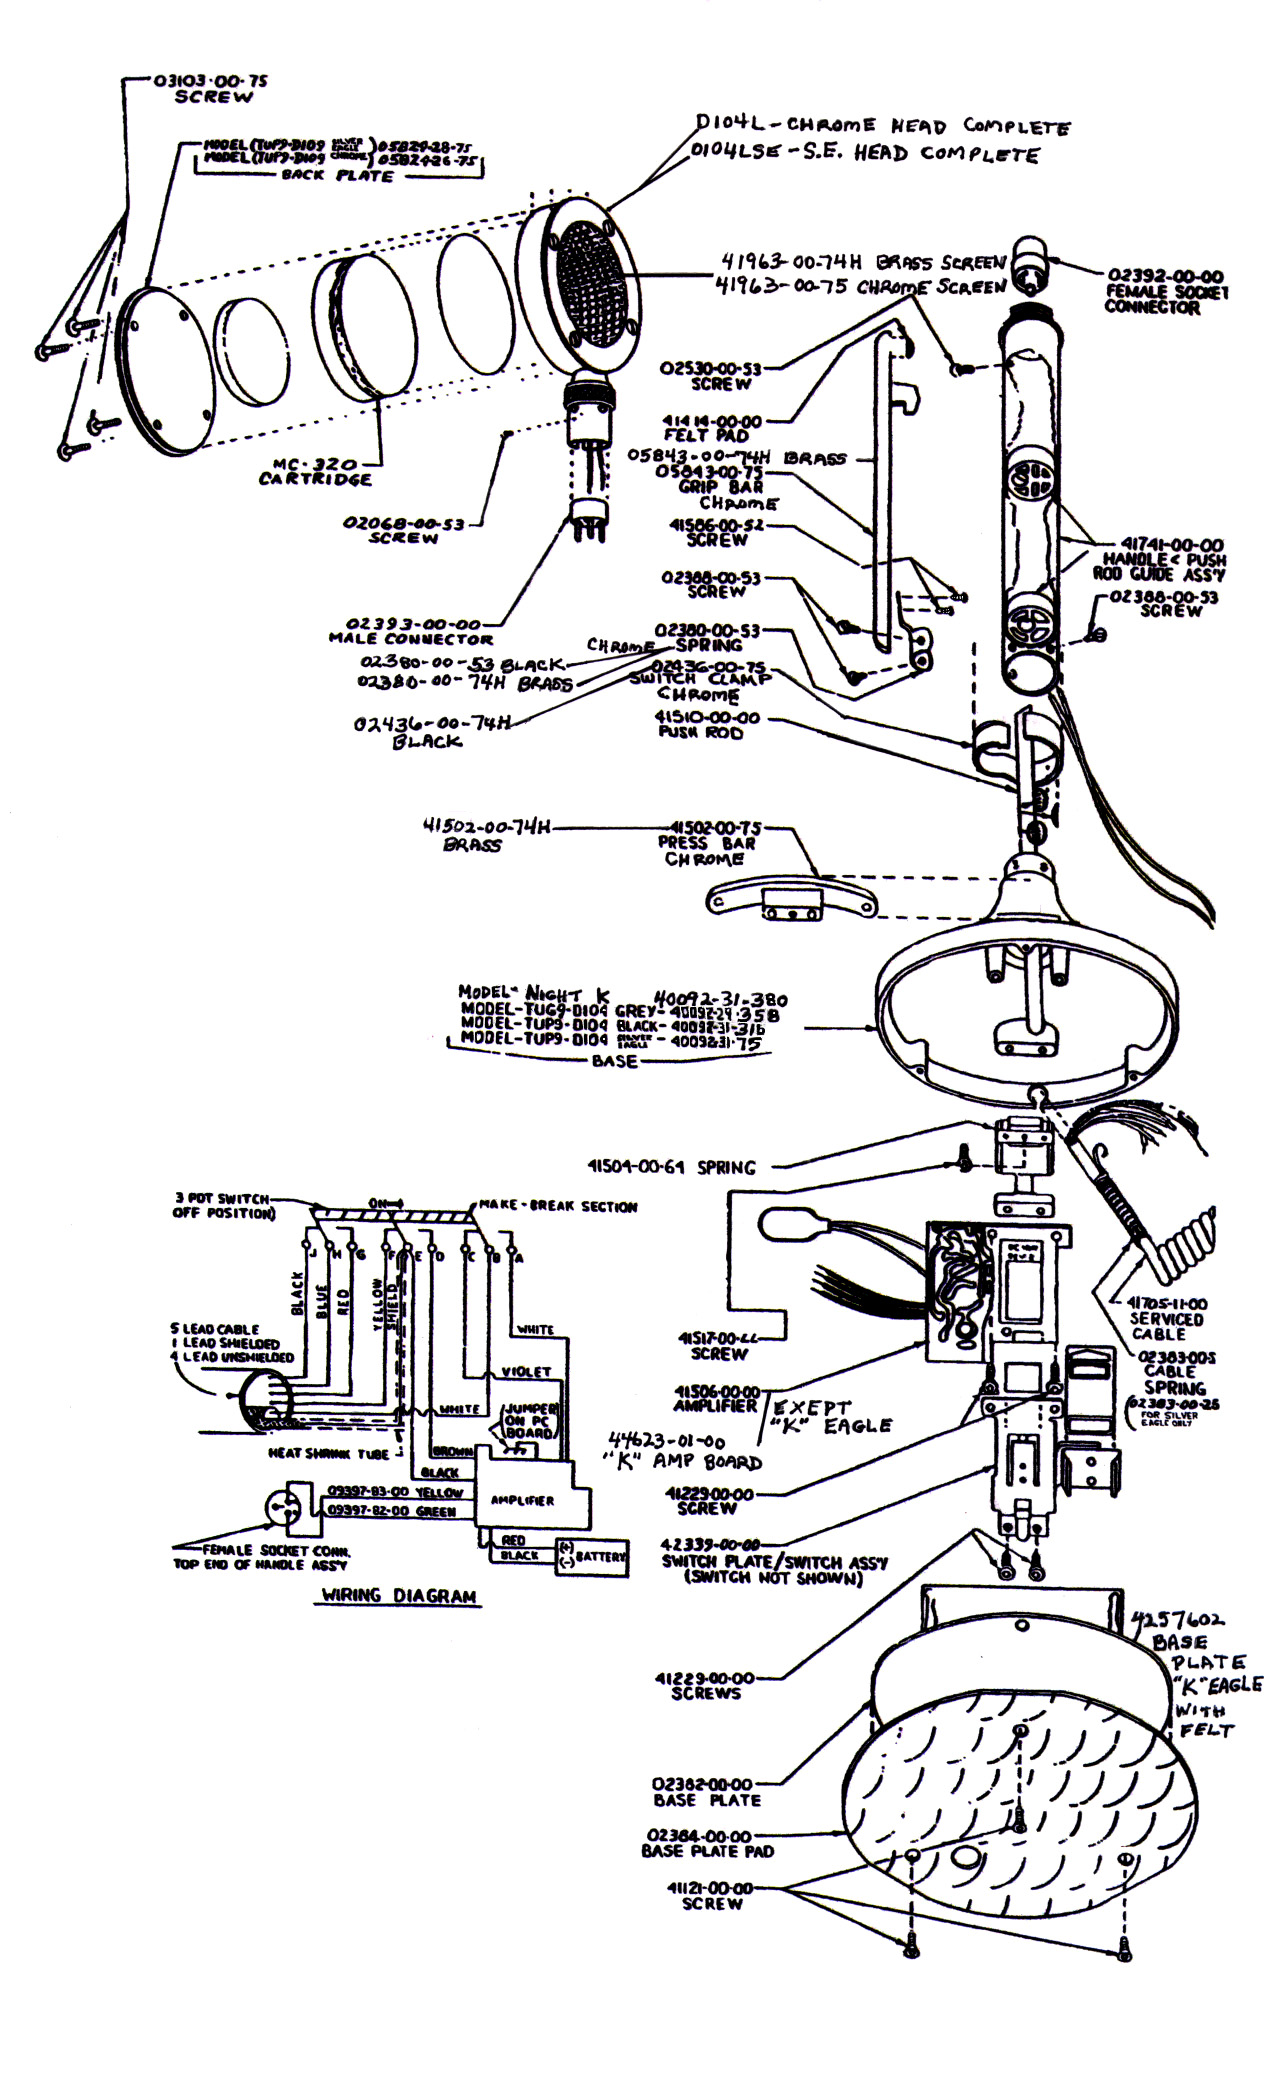 D104 Silver Eagle Wiring Diagram